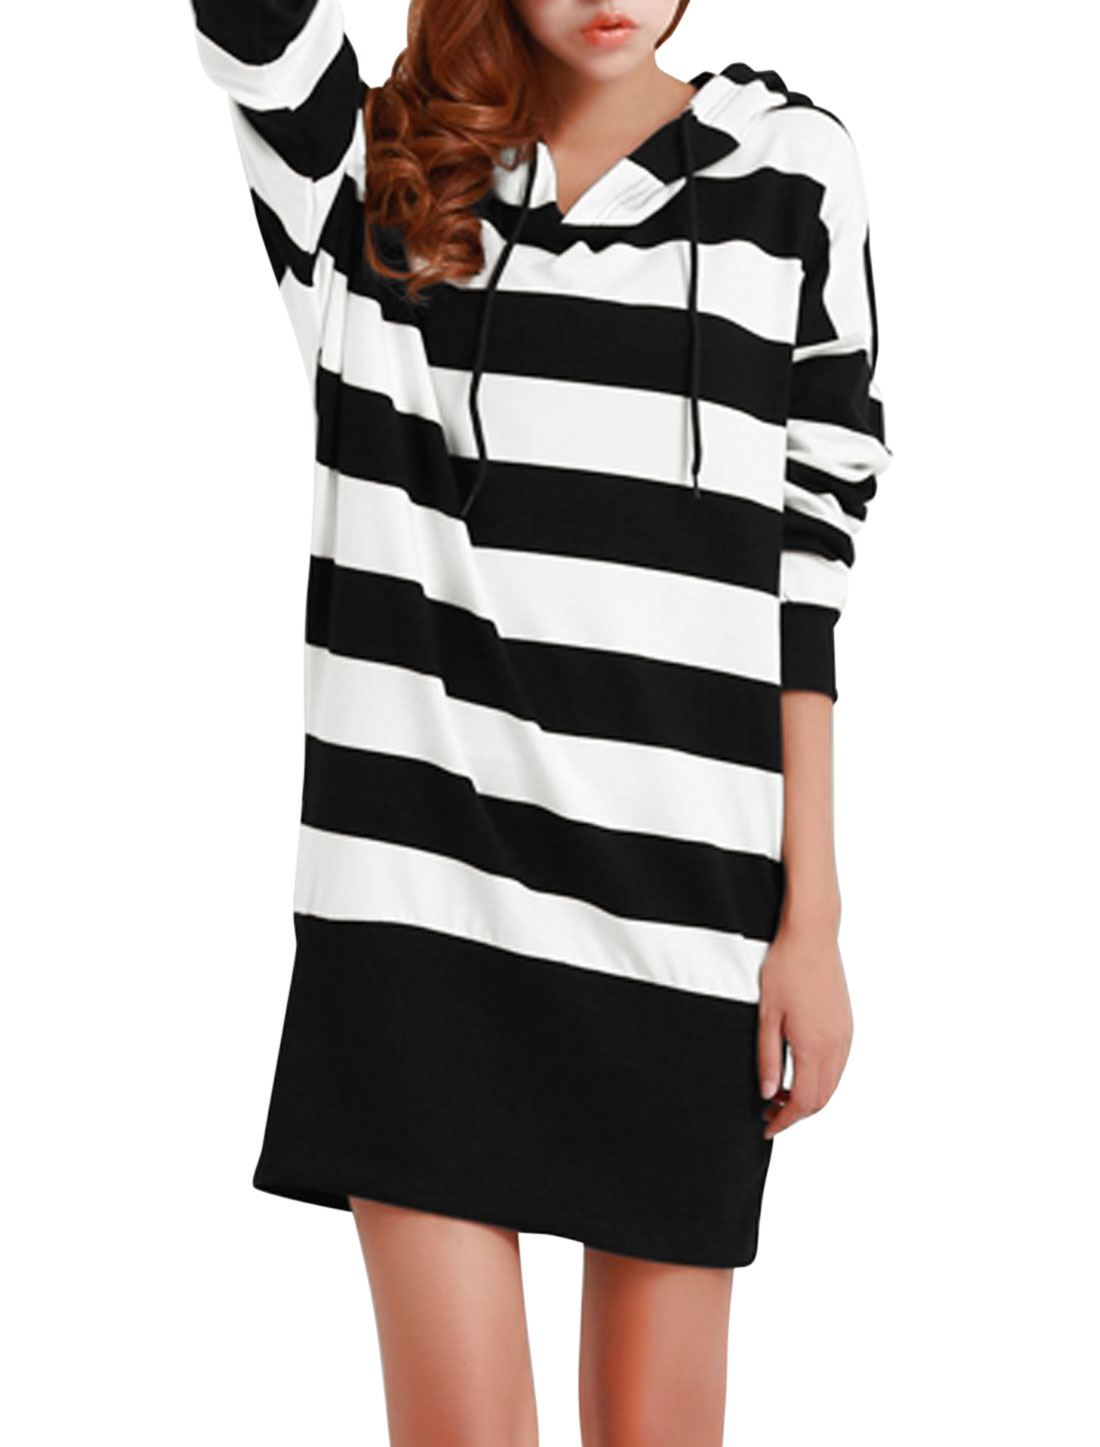 Lady Drawstring Hooded Stripes Pattern Casual Hooded Dress White Black XS